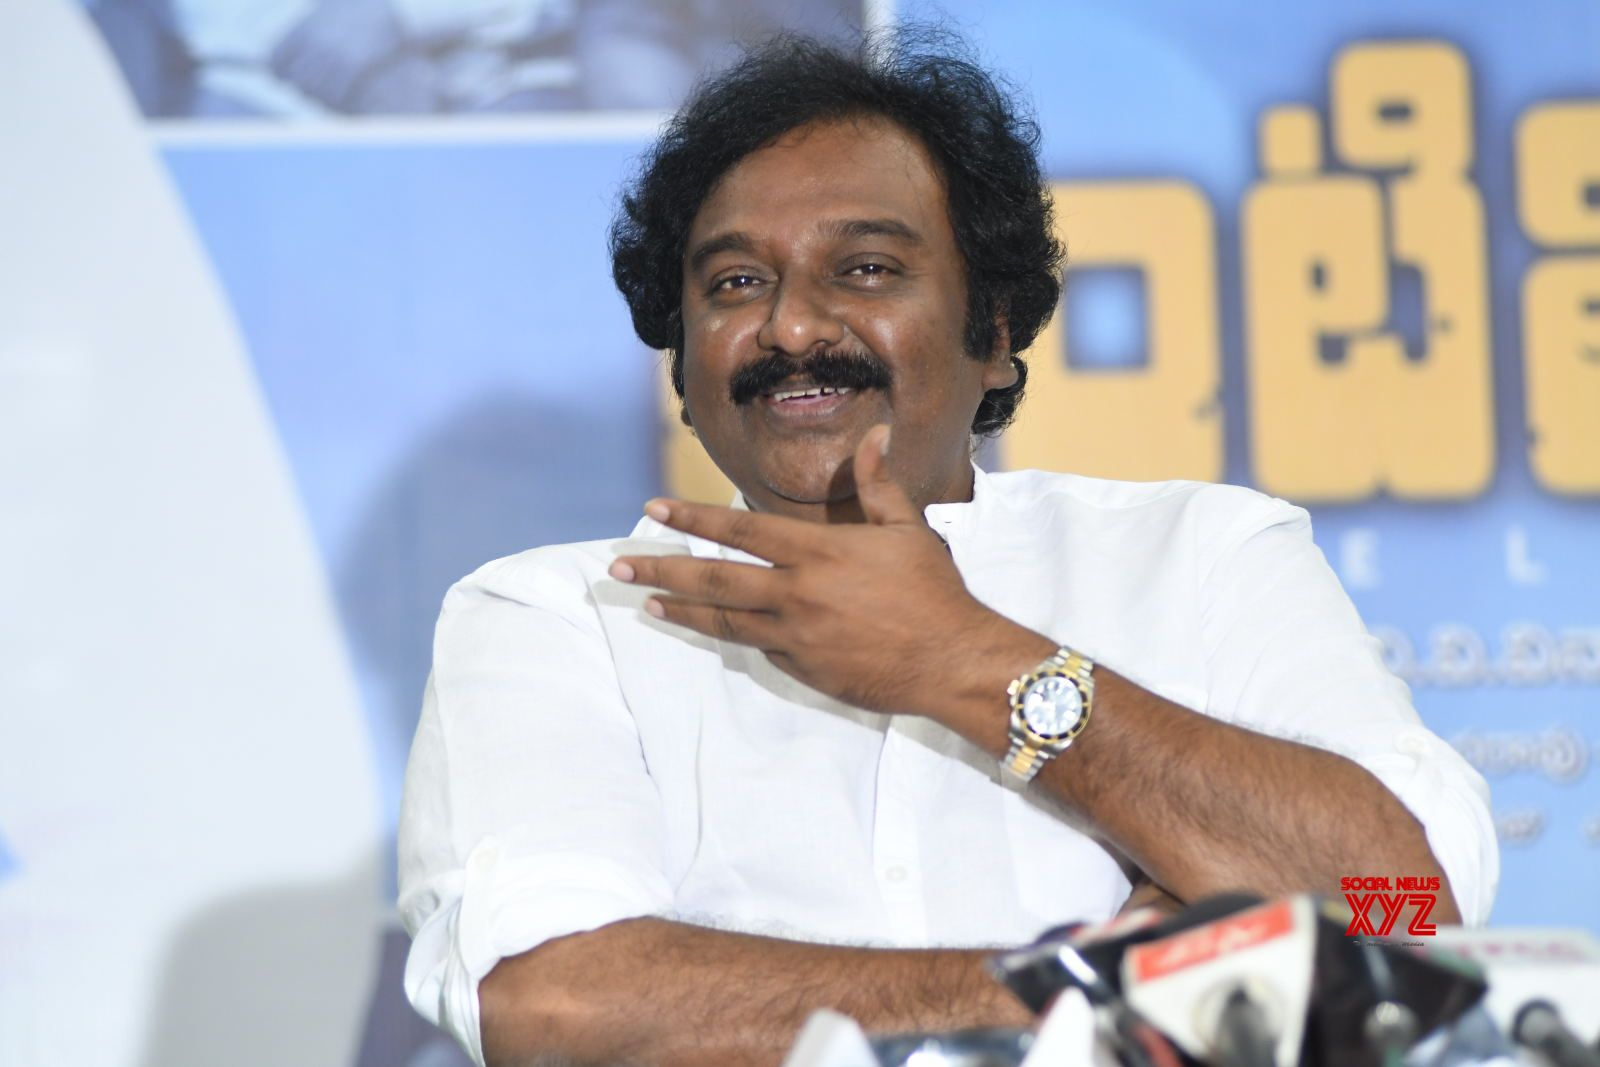 We are confident Inttelligent movie will definitely be a Superhit: V.V Vinayak